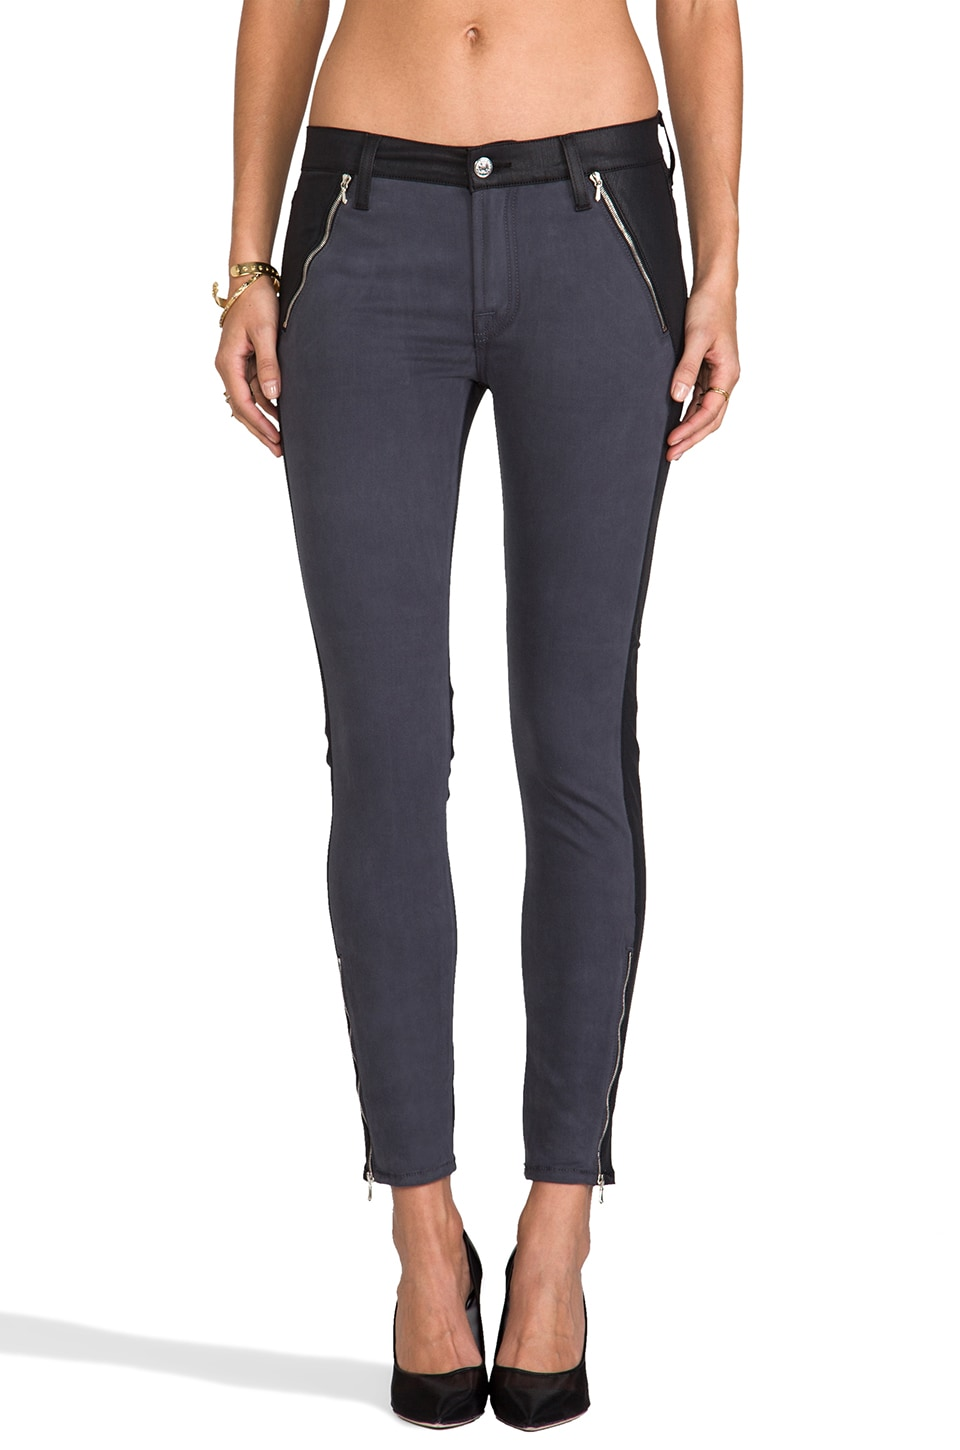 7 For All Mankind Fashion Zipped Skinny in Grey Sateen